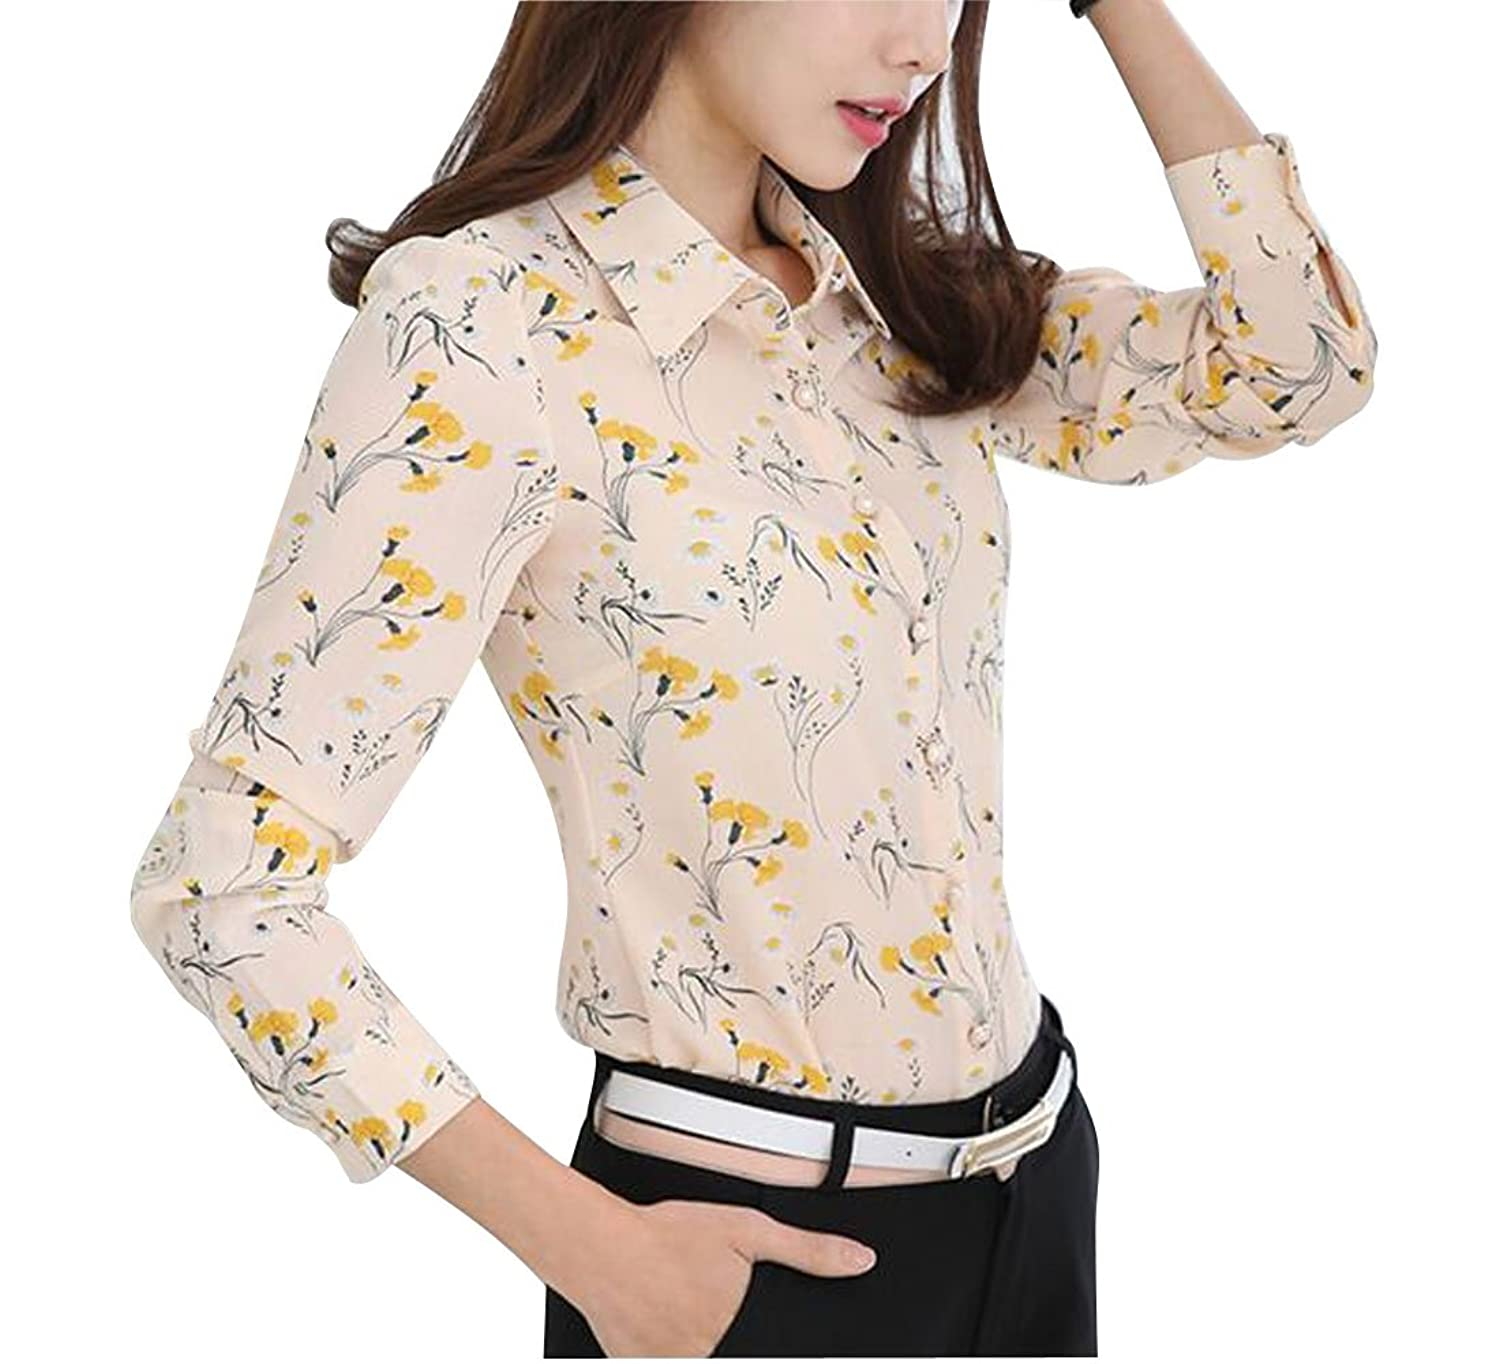 24344caa79 95%Ployester/5%Spandex Full Natural Beautiful Scenery Stand Up Collar and  No Pocket Occasion:Casual,Work,Formal,Business.Printed Button Add More  Elegant